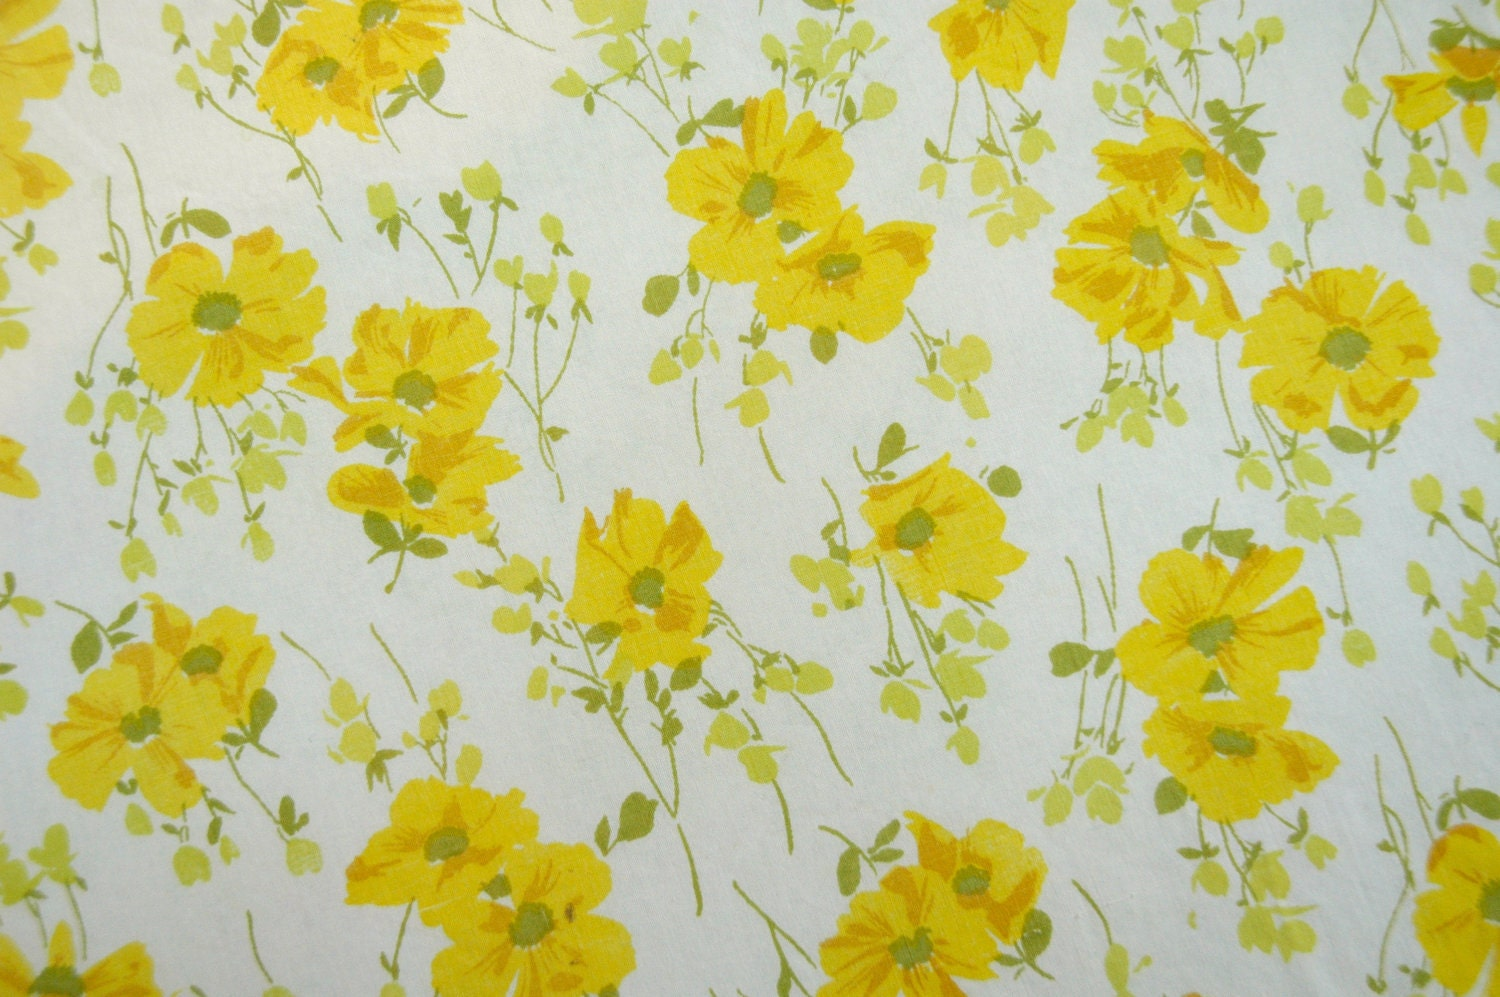 yellow floral pattern - photo #26